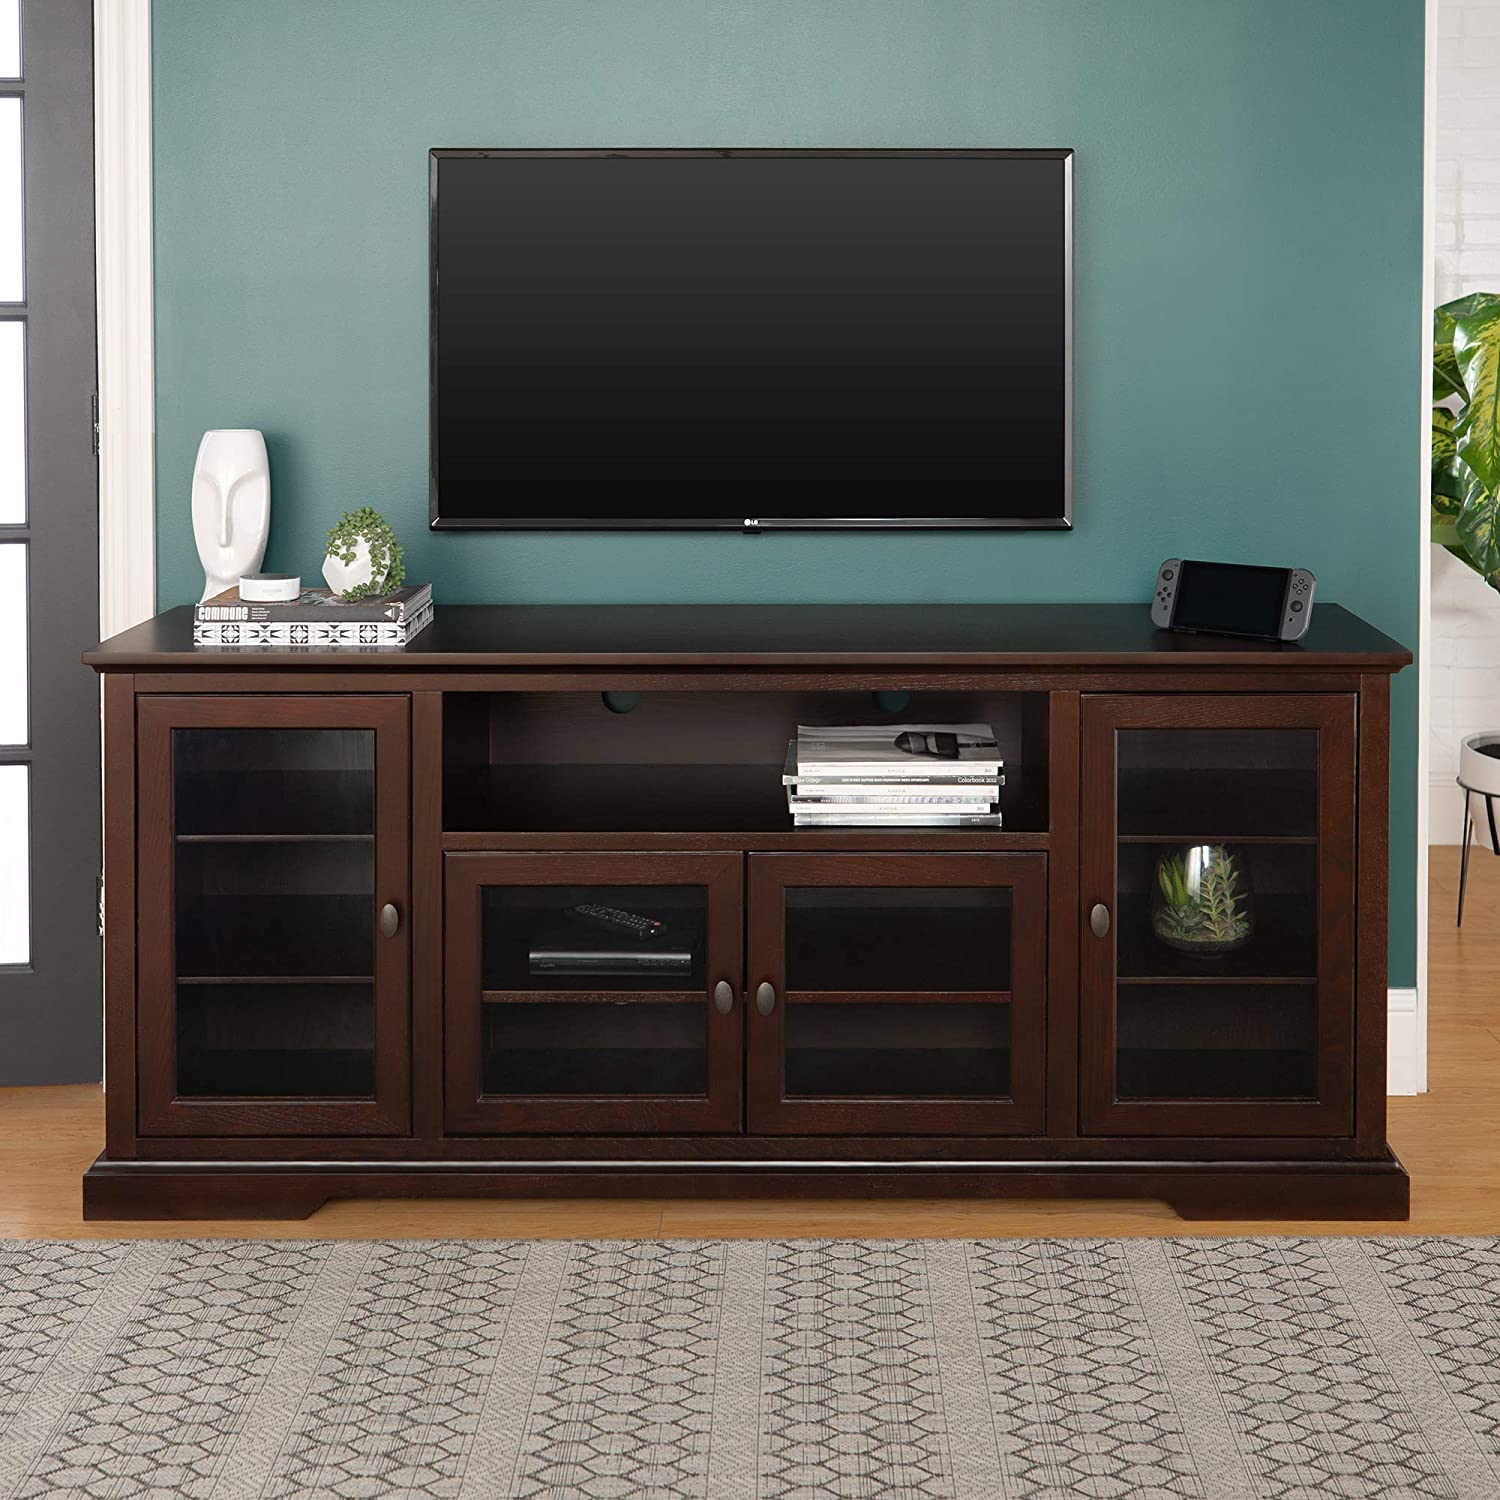 Amazon Com Walker Edison Concord Classic Glass Door Storage Tv Console For Tvs Up To 80 Inches 70 Inch Espresso Brown Furniture Decor